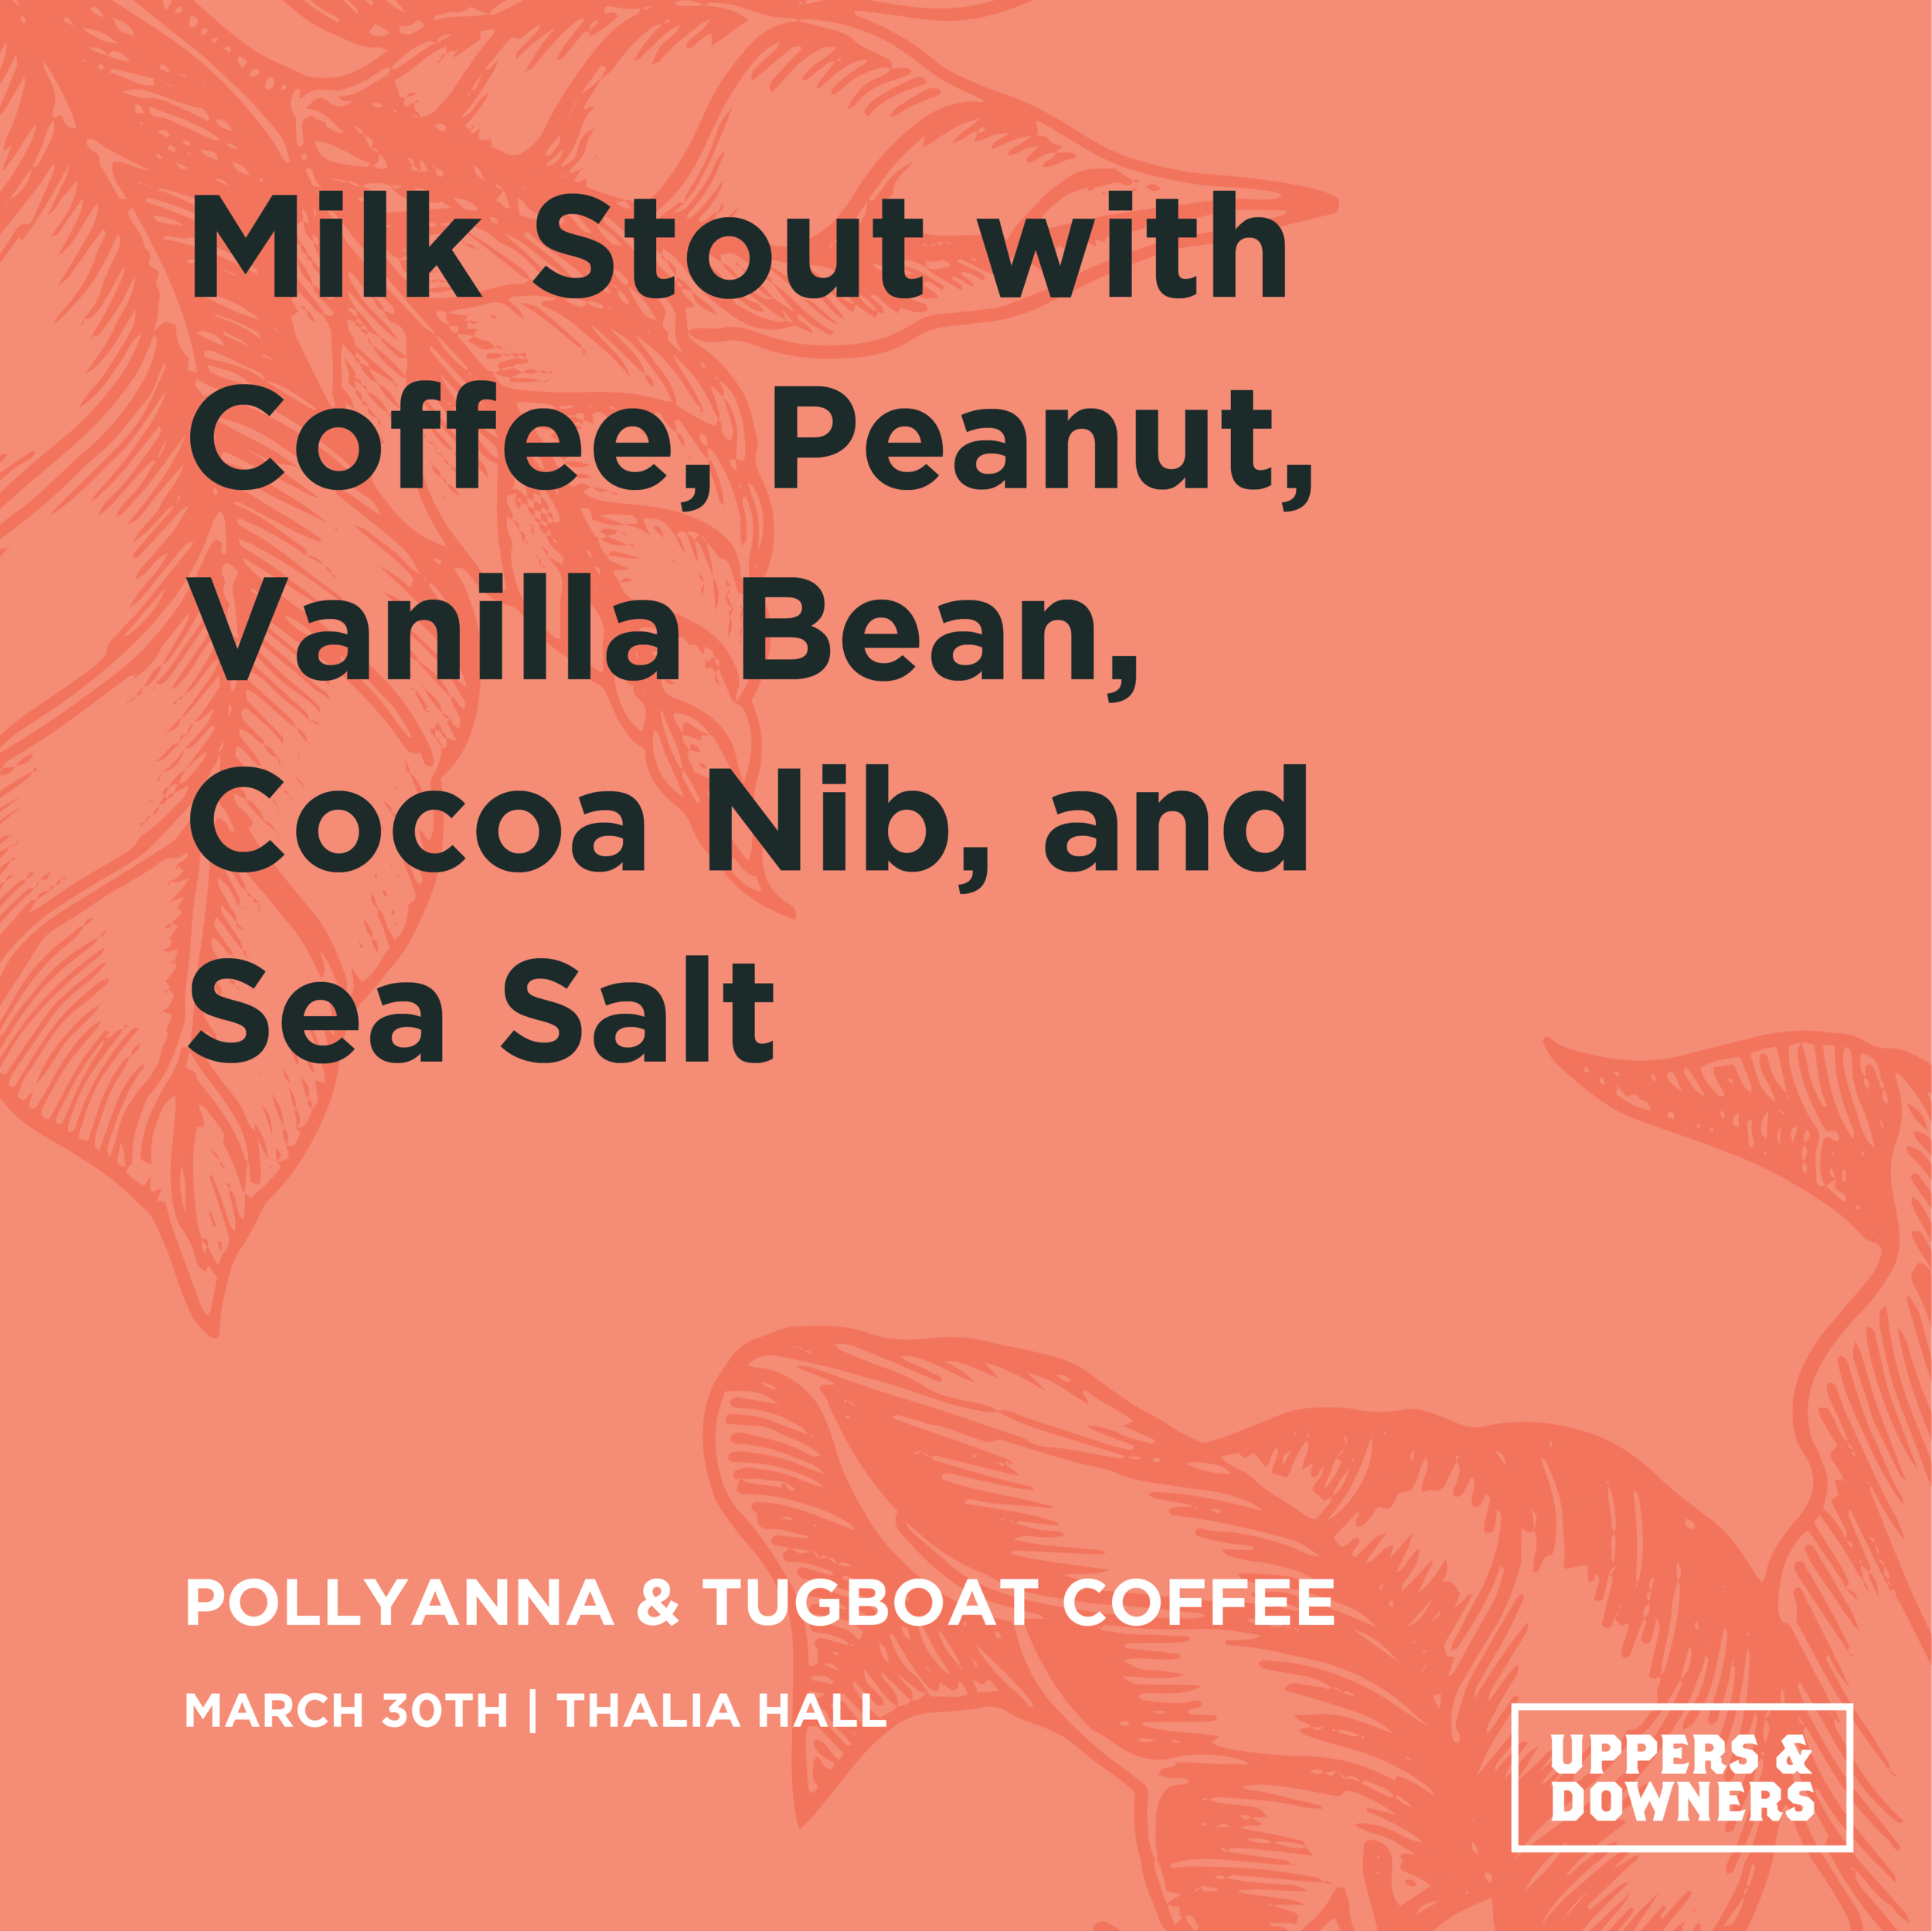 UD2019_Beer_Roaster_Instagram_Graphic_Pollyanna_TugboatCoffee.png